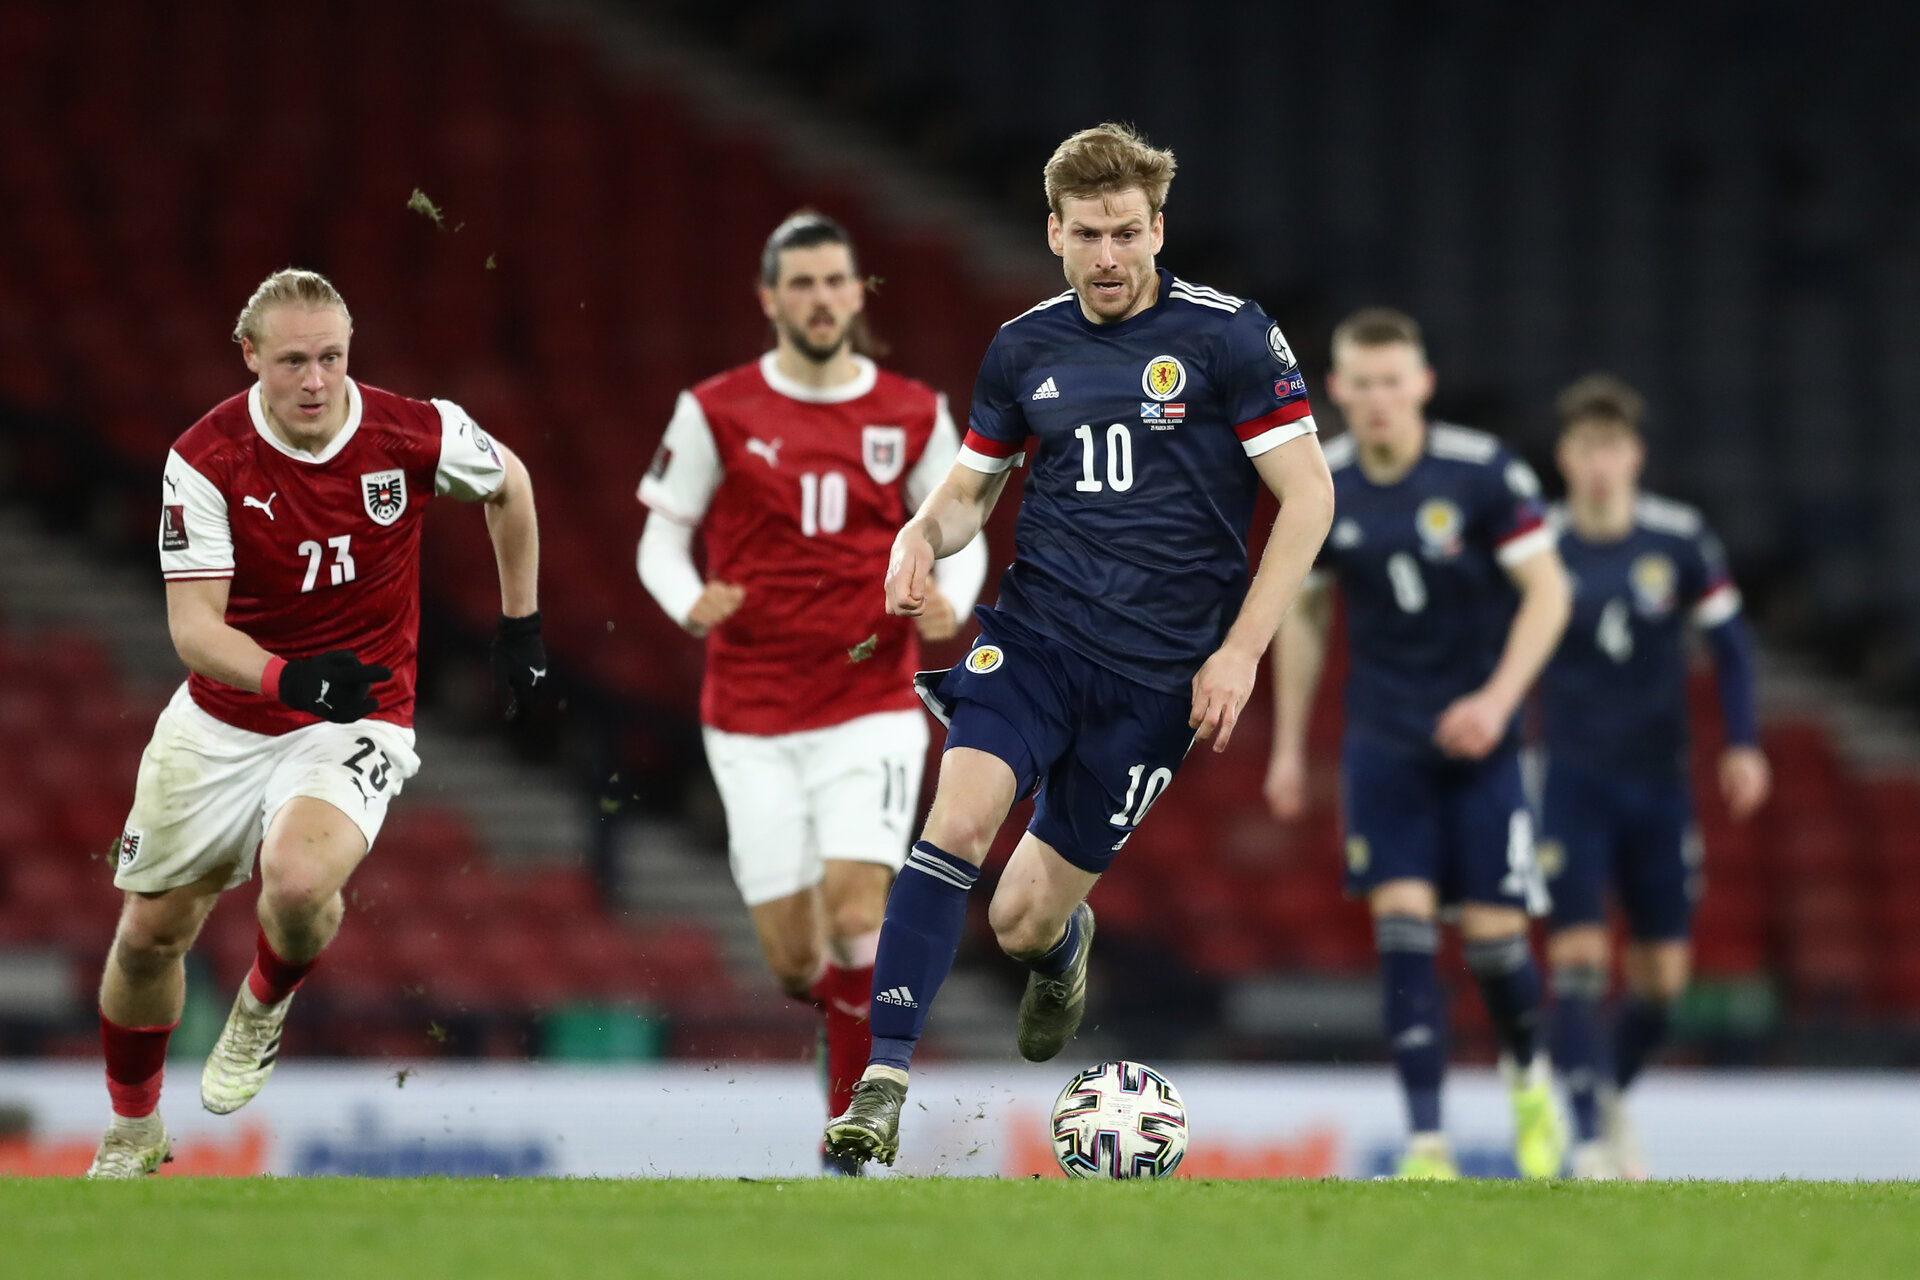 GLASGOW, SCOTLAND - MARCH 25: Stuart Armstrong of Scotland runs with the ball whilst under pressure from Xaver Schlager of Austria during the FIFA World Cup 2022 Qatar qualifying match between Scotland and Austria on March 25, 2021 in Glasgow, Scotland. Sporting stadiums around the UK remain under strict restrictions due to the Coronavirus Pandemic as Government social distancing laws prohibit fans inside venues resulting in games being played behind closed doors. (Photo by Jan Kruger - UEFA/UEFA via Getty Images)